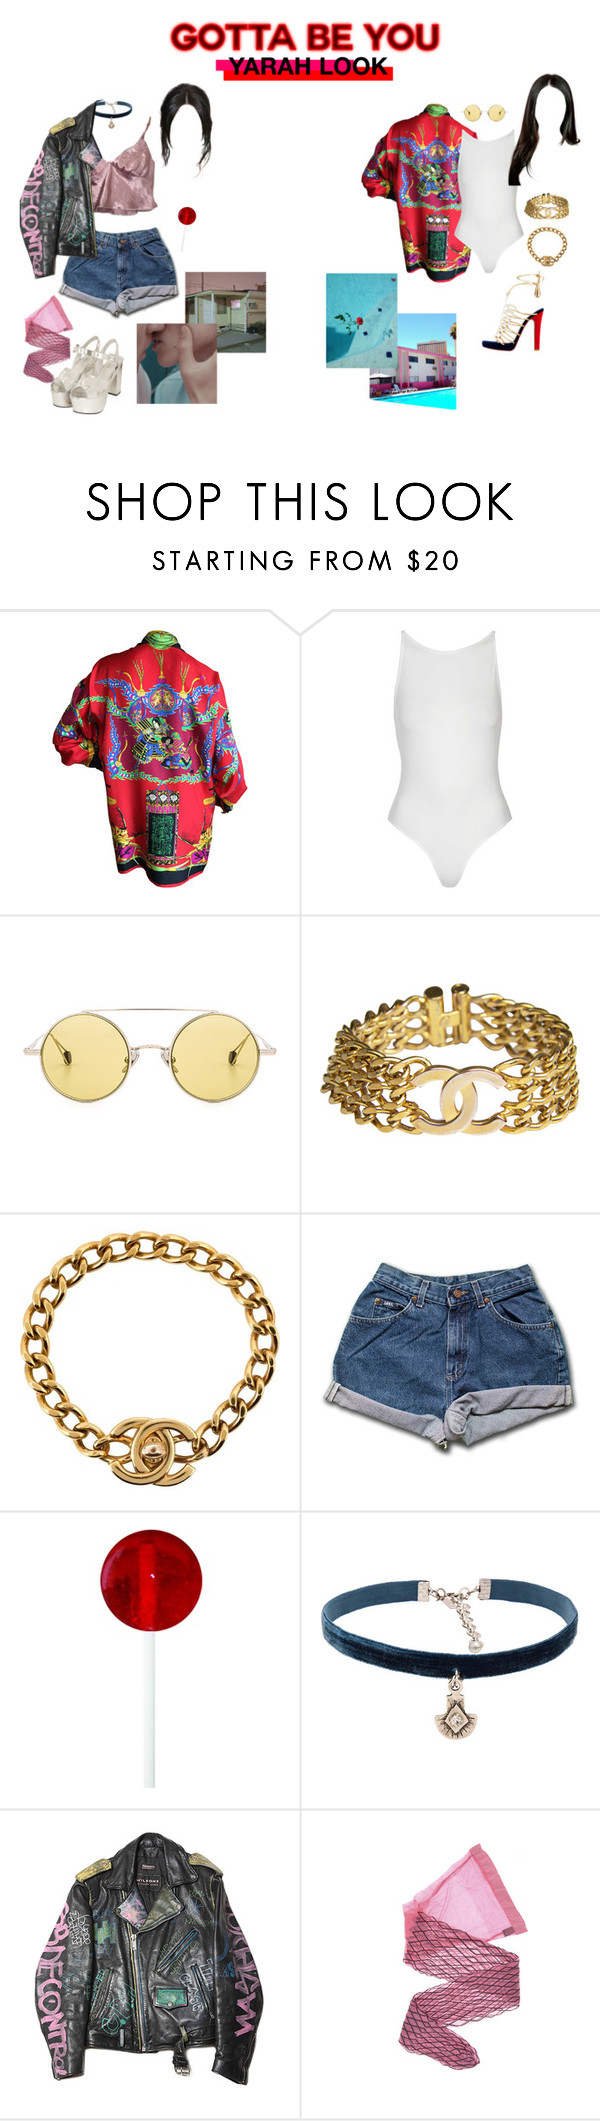 """""""ARIA   'Gotta Be You' M/V look"""" by ariaofficial ❤ liked on Polyvore featuring Versace, Topshop, Ahlem, Christian Louboutin, Chanel, GET LOST, Natalie B and Wolford"""